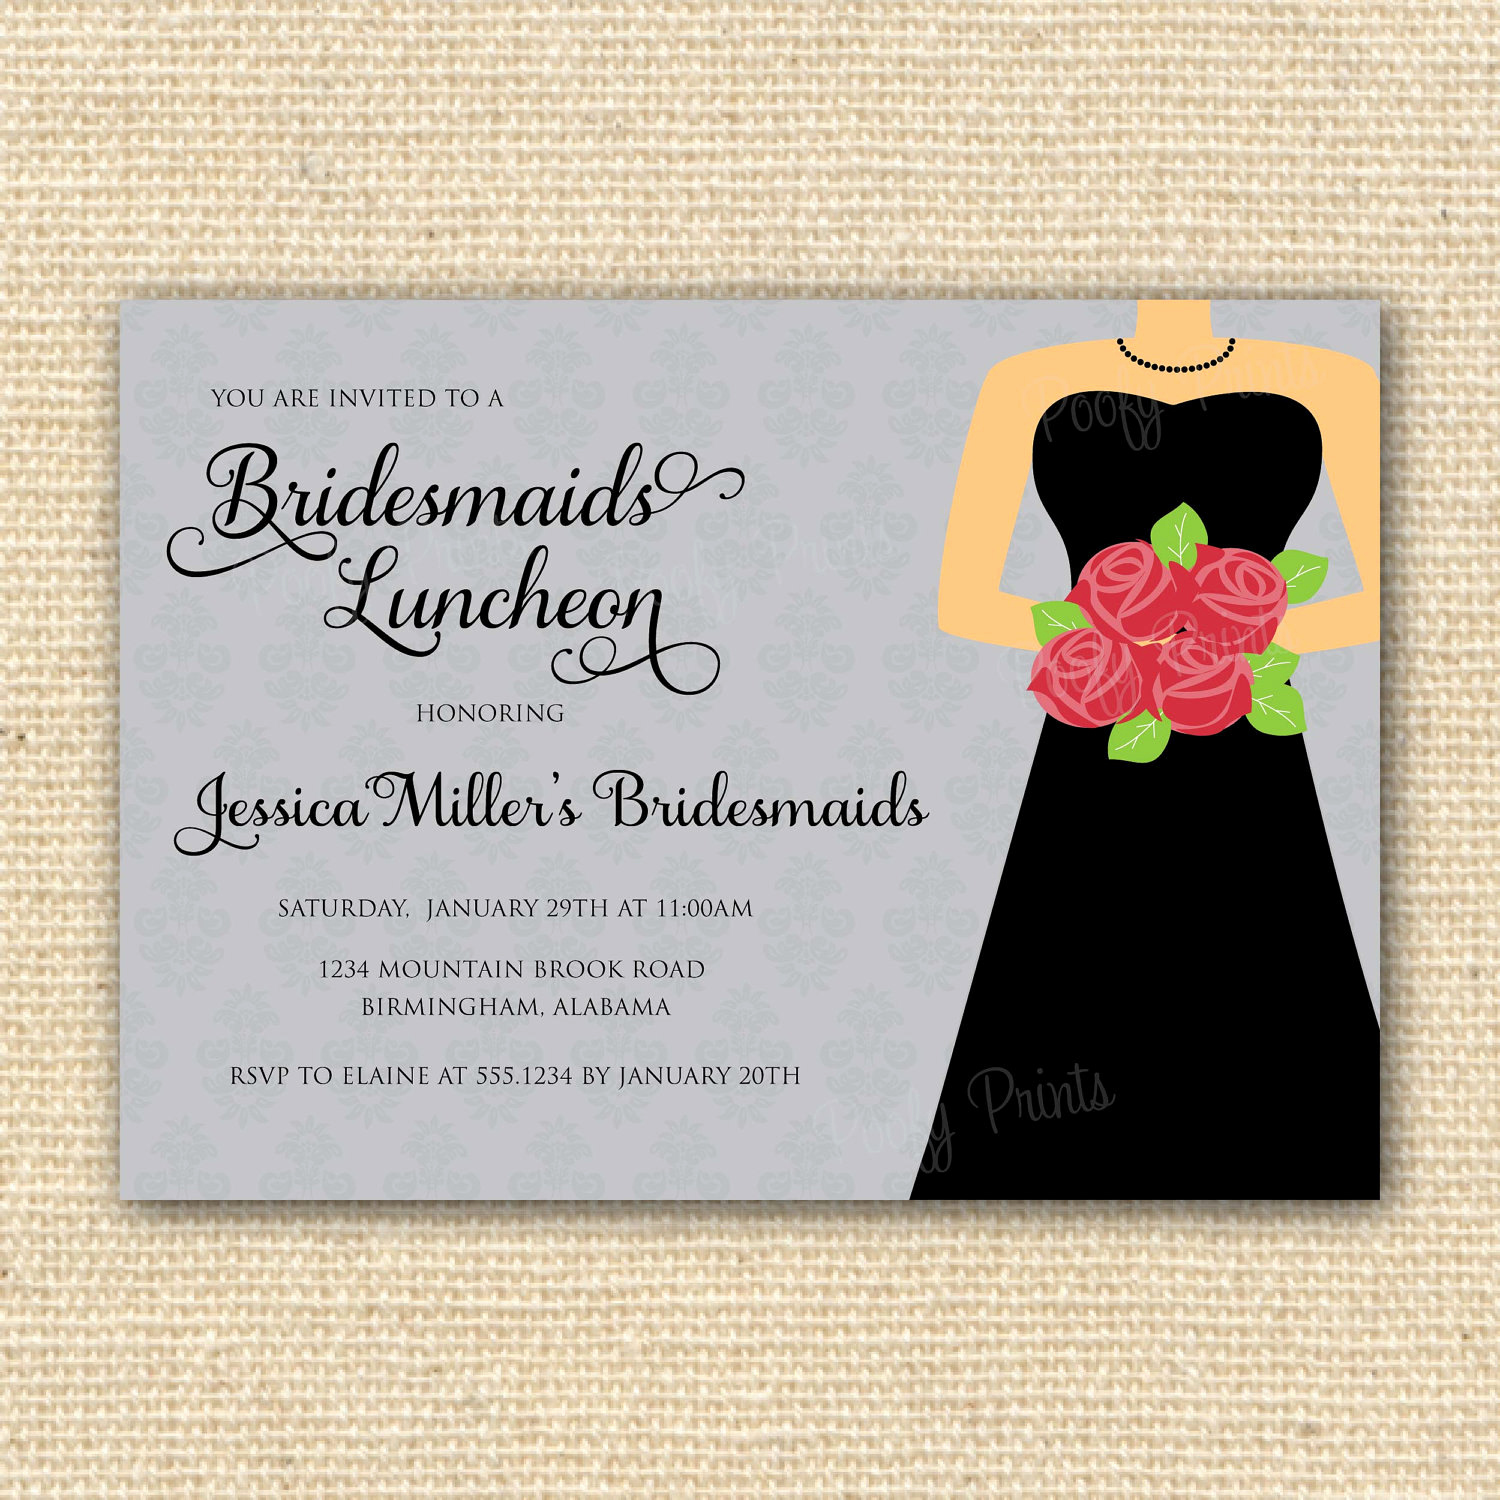 Bridal Luncheon Invitation Wording Awesome Bridesmaids Luncheon Invitation Bridal Brunch Diy by